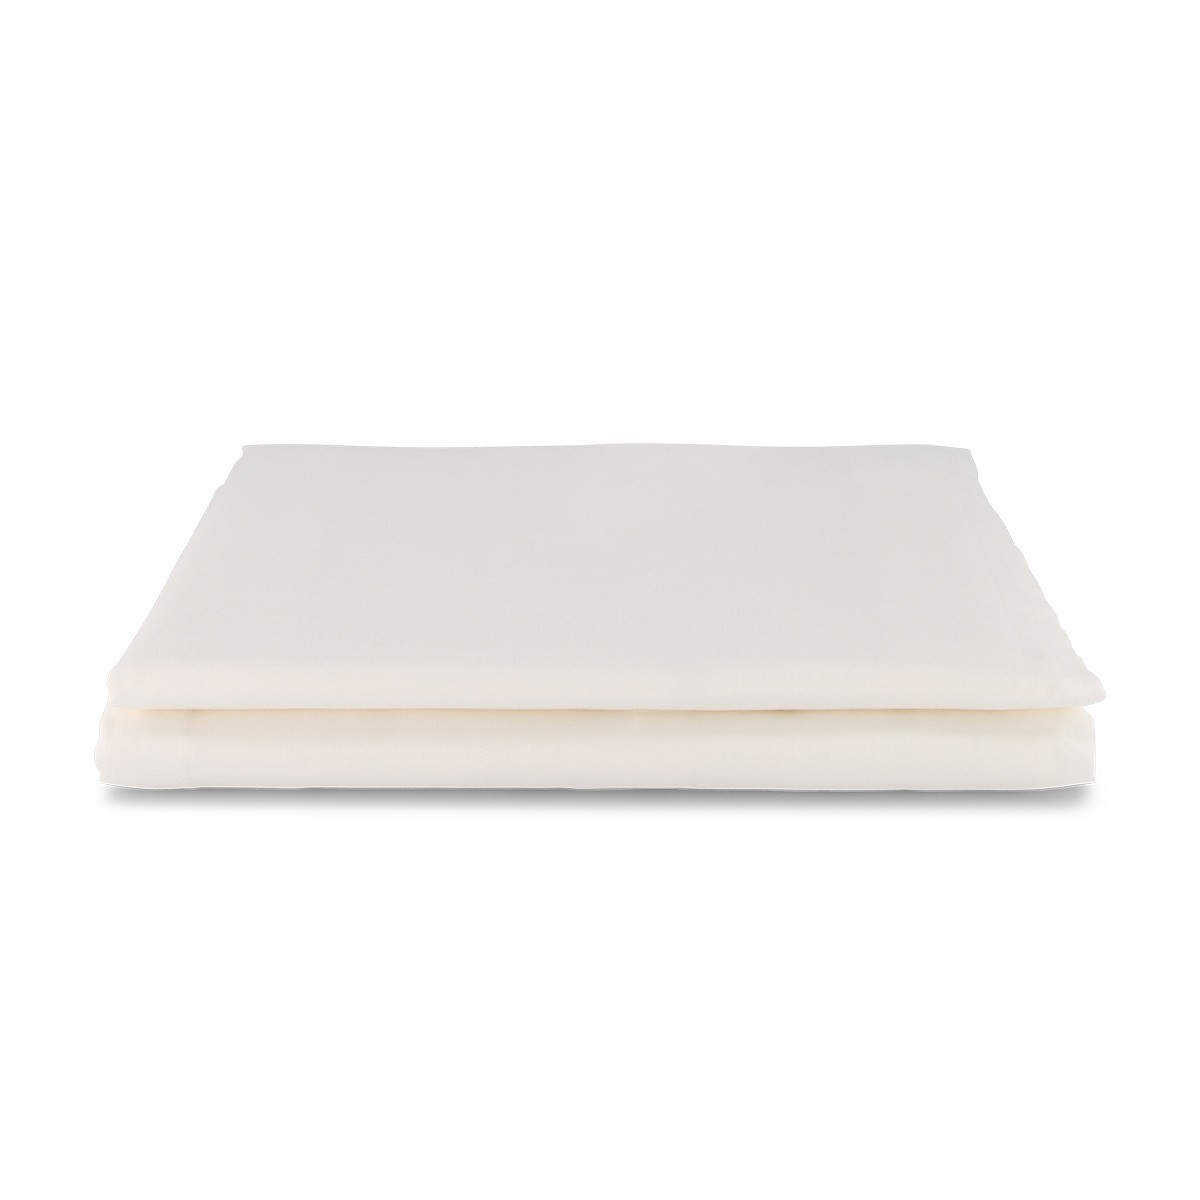 Venezia Fitted Sheet, Cream White